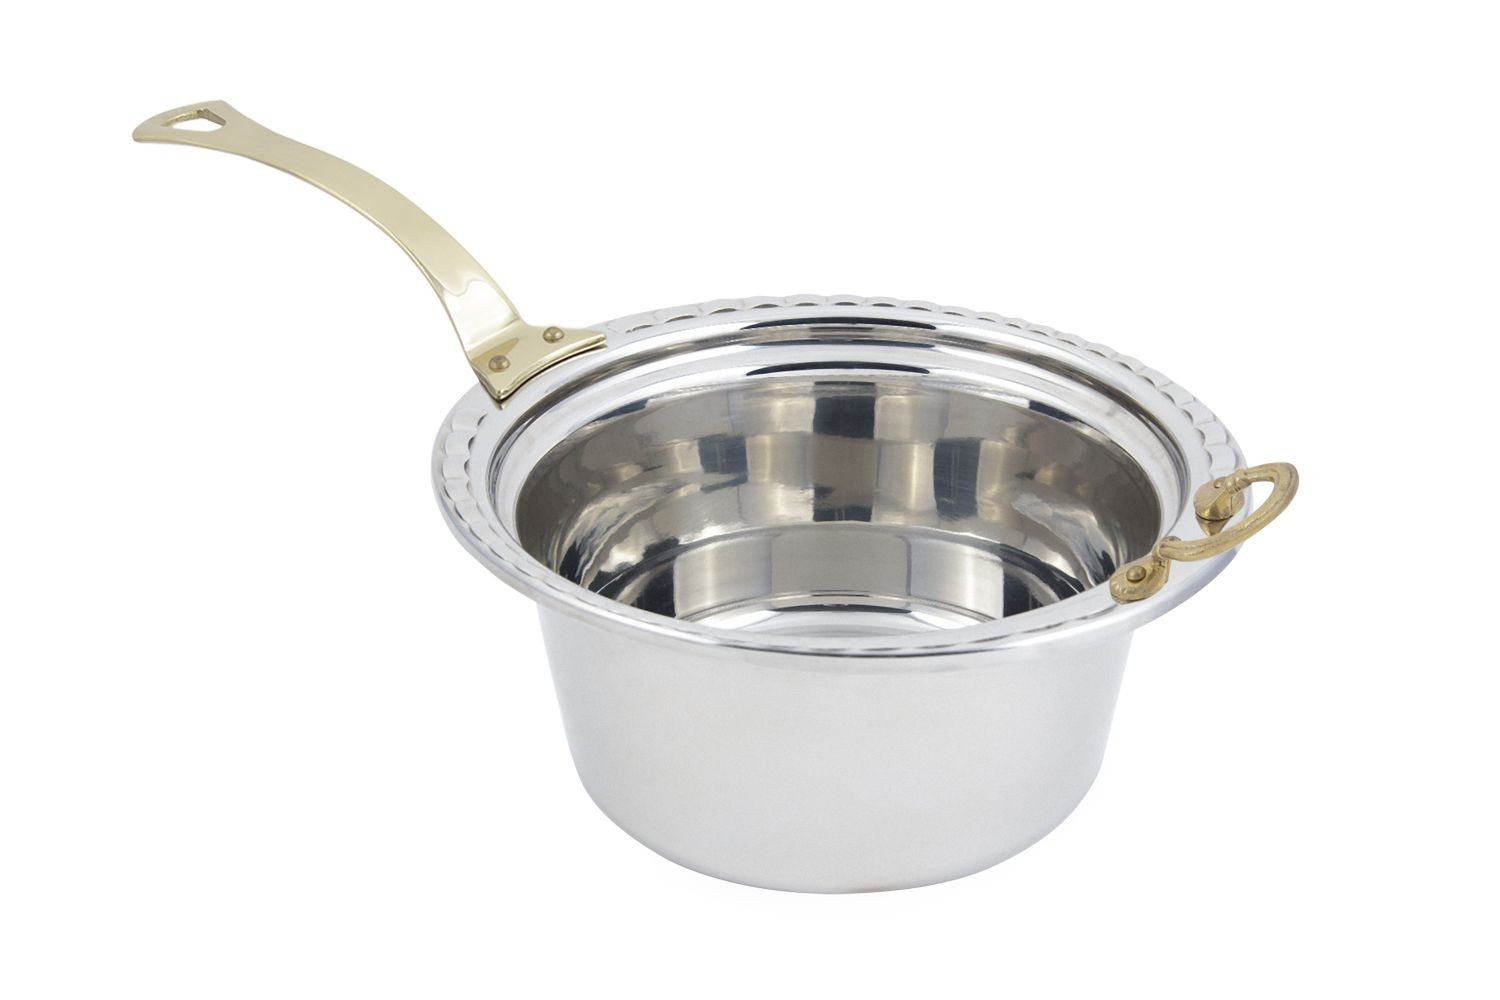 Bon Chef 5660HL Arches Design Casserole Dish with Long Brass Handle, 5 Qt.